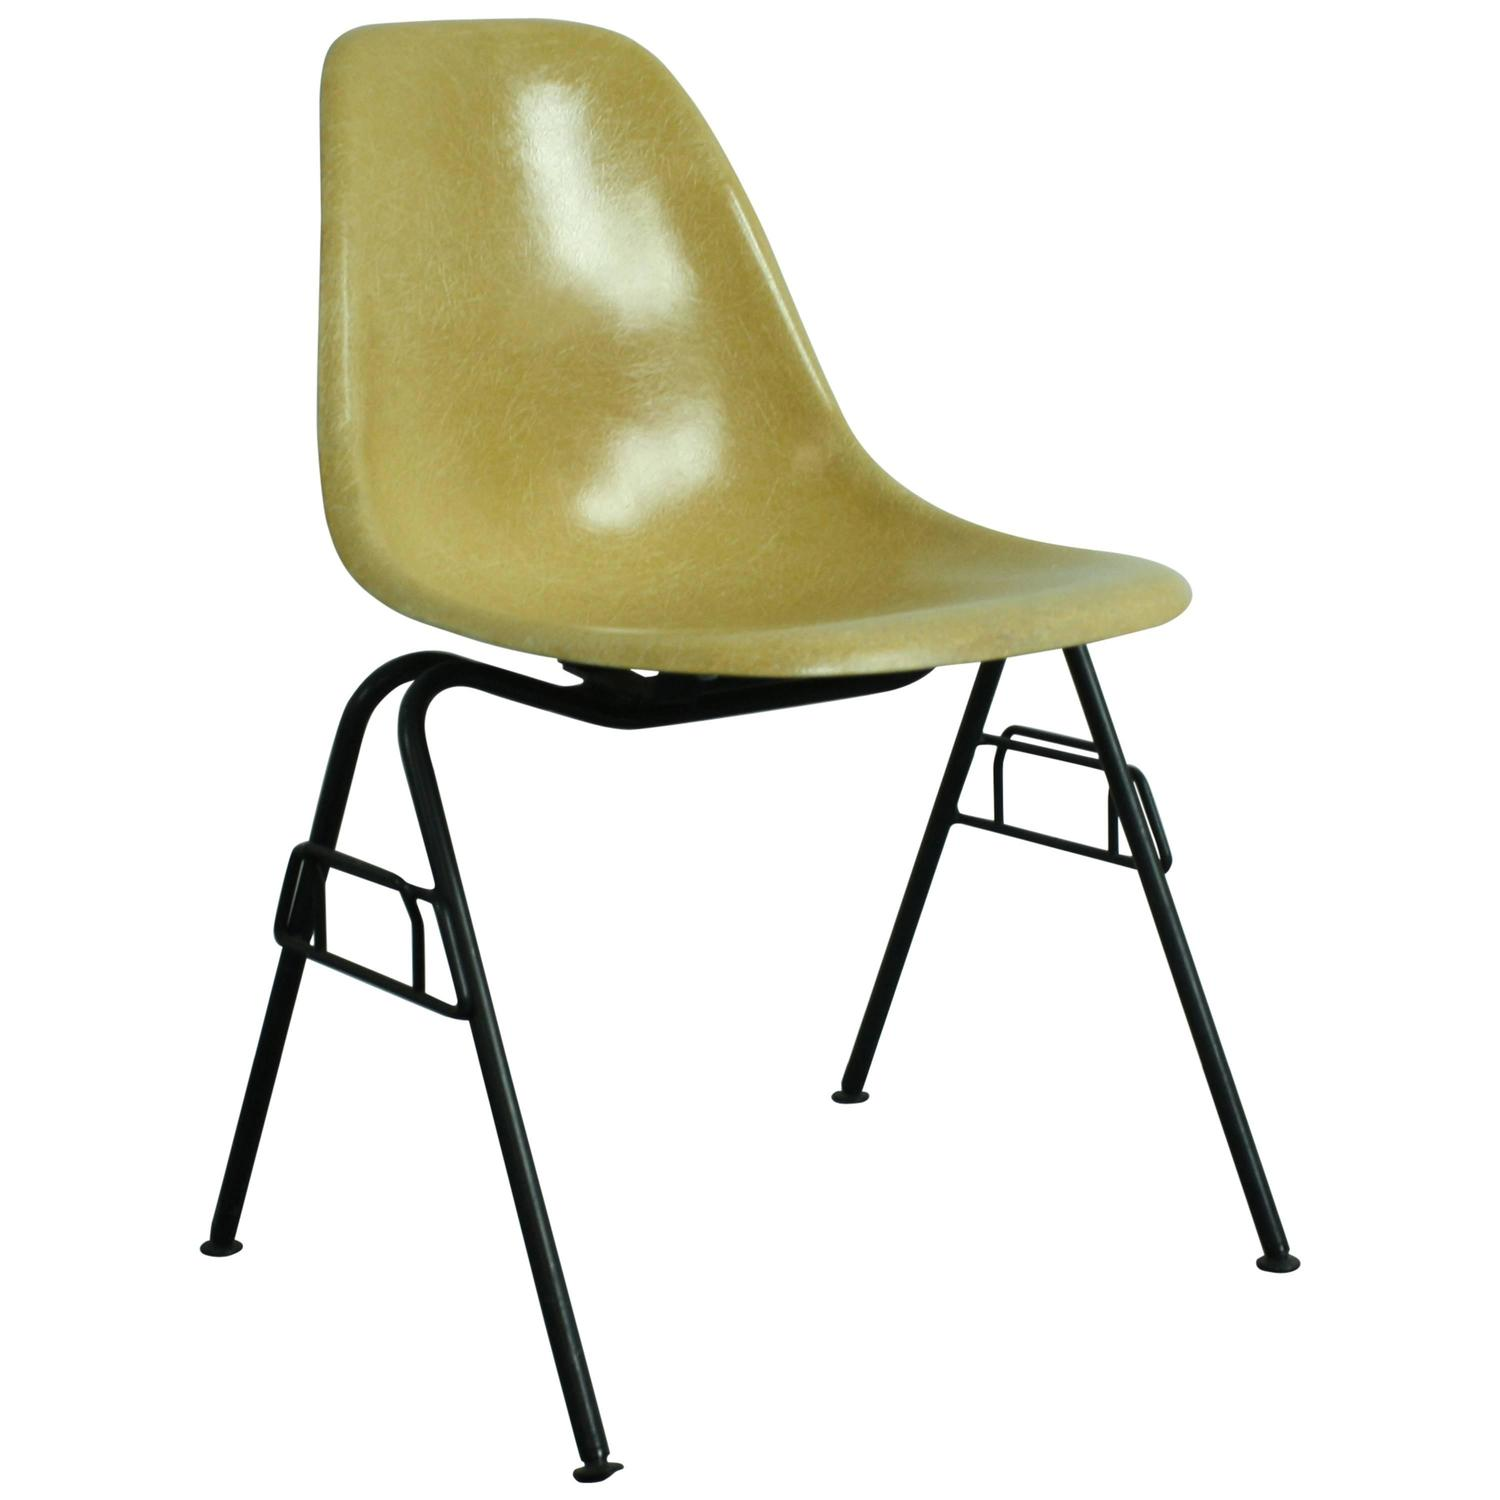 charles eames herman miller dss chair in light ochre on